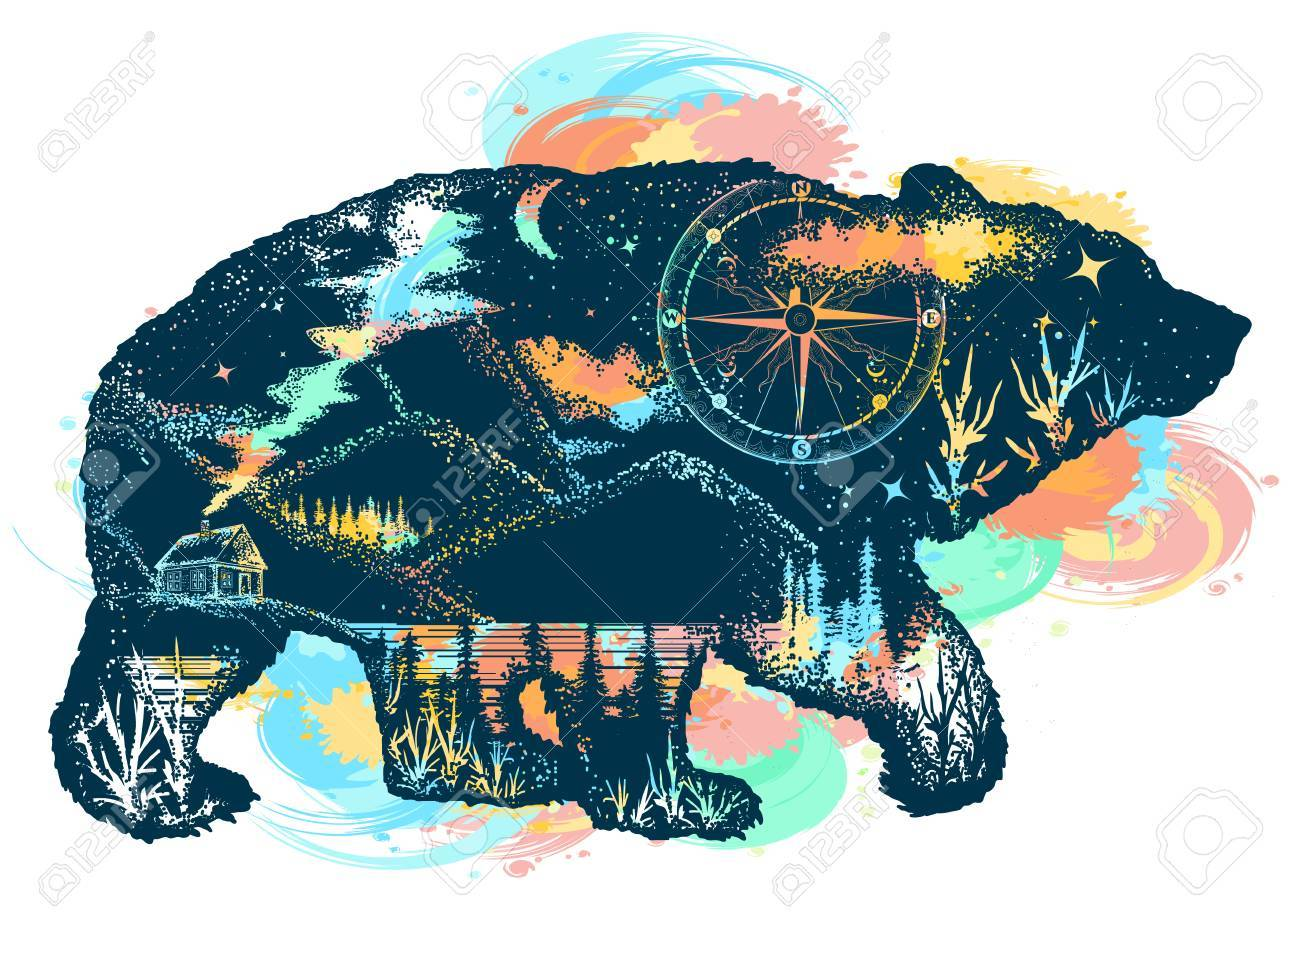 Magic bear double exposure color tattoo art. Mountains, compass. Bear grizzly silhouette t-shirt design. Tourism symbol, adventure, great outdoor - 89056694